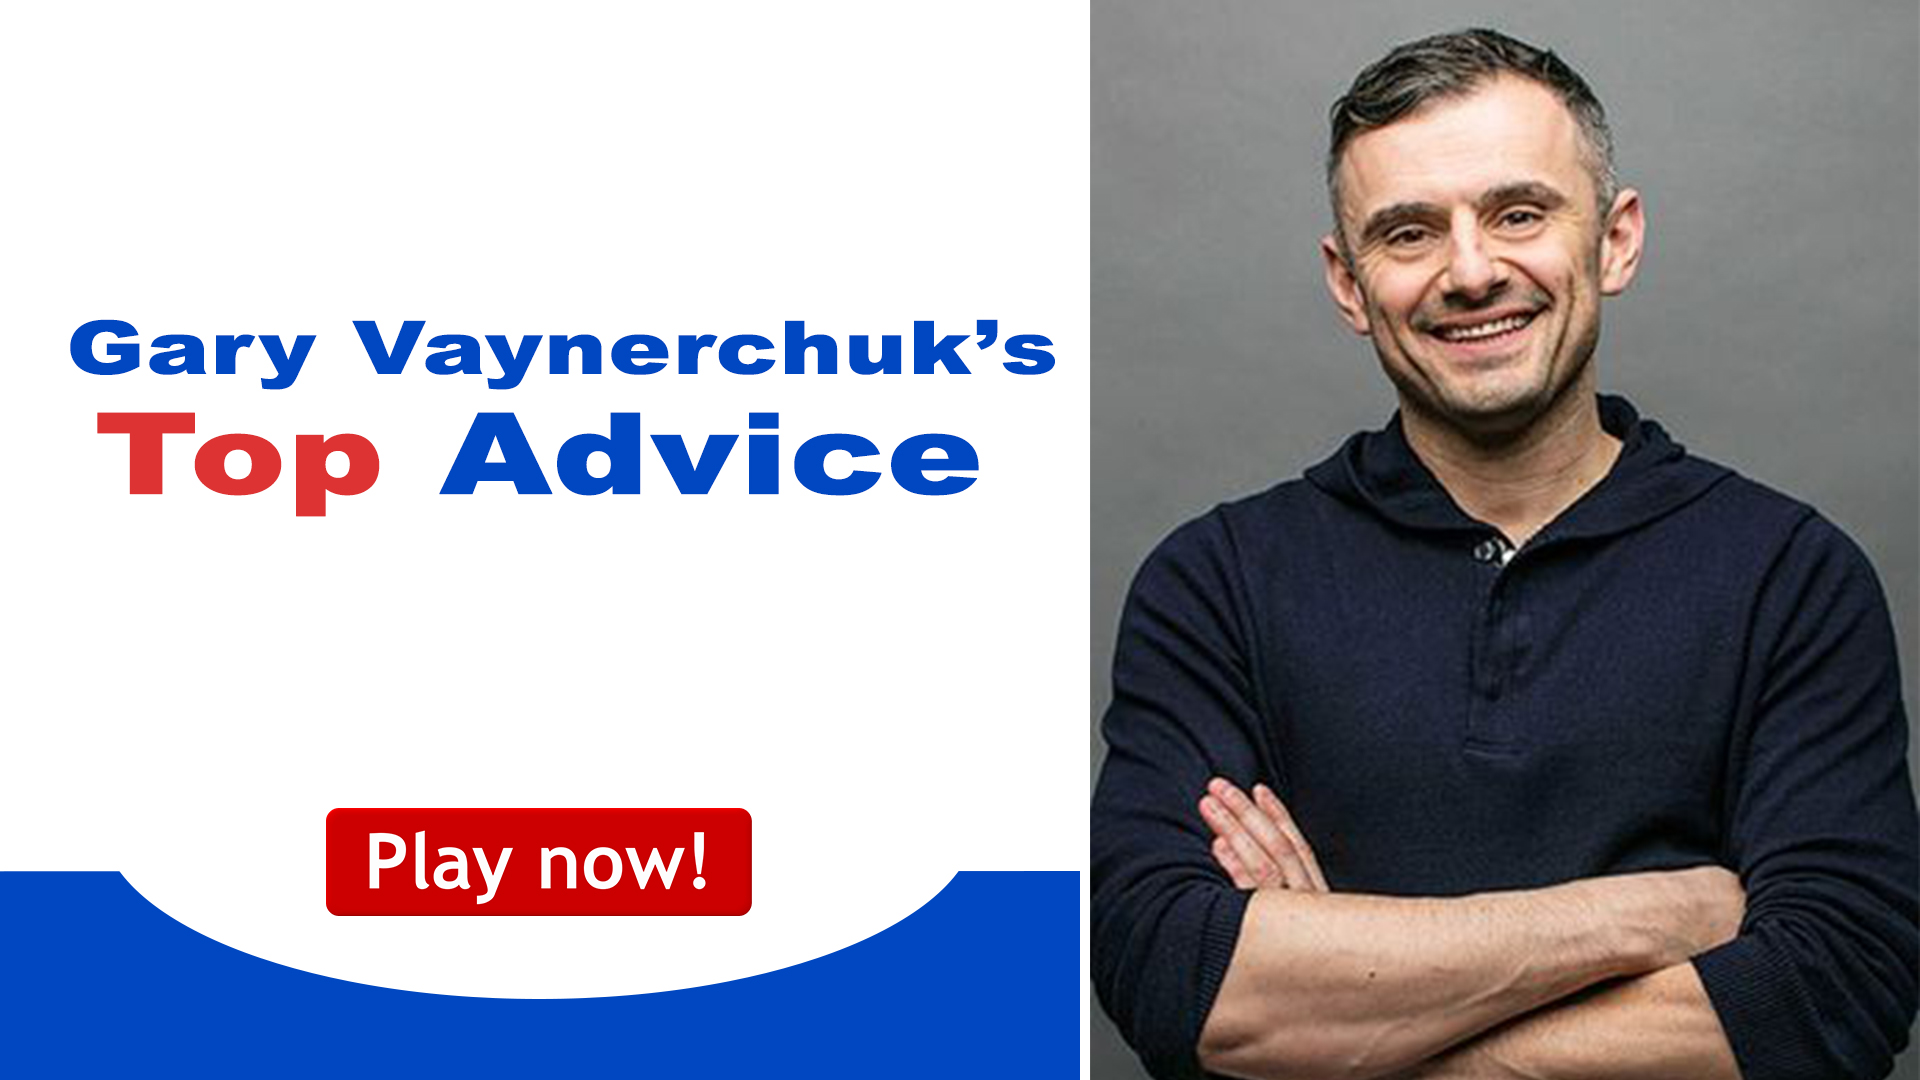 A-classes daily Inspiration - Gary Vaynerchuk's Top Advice